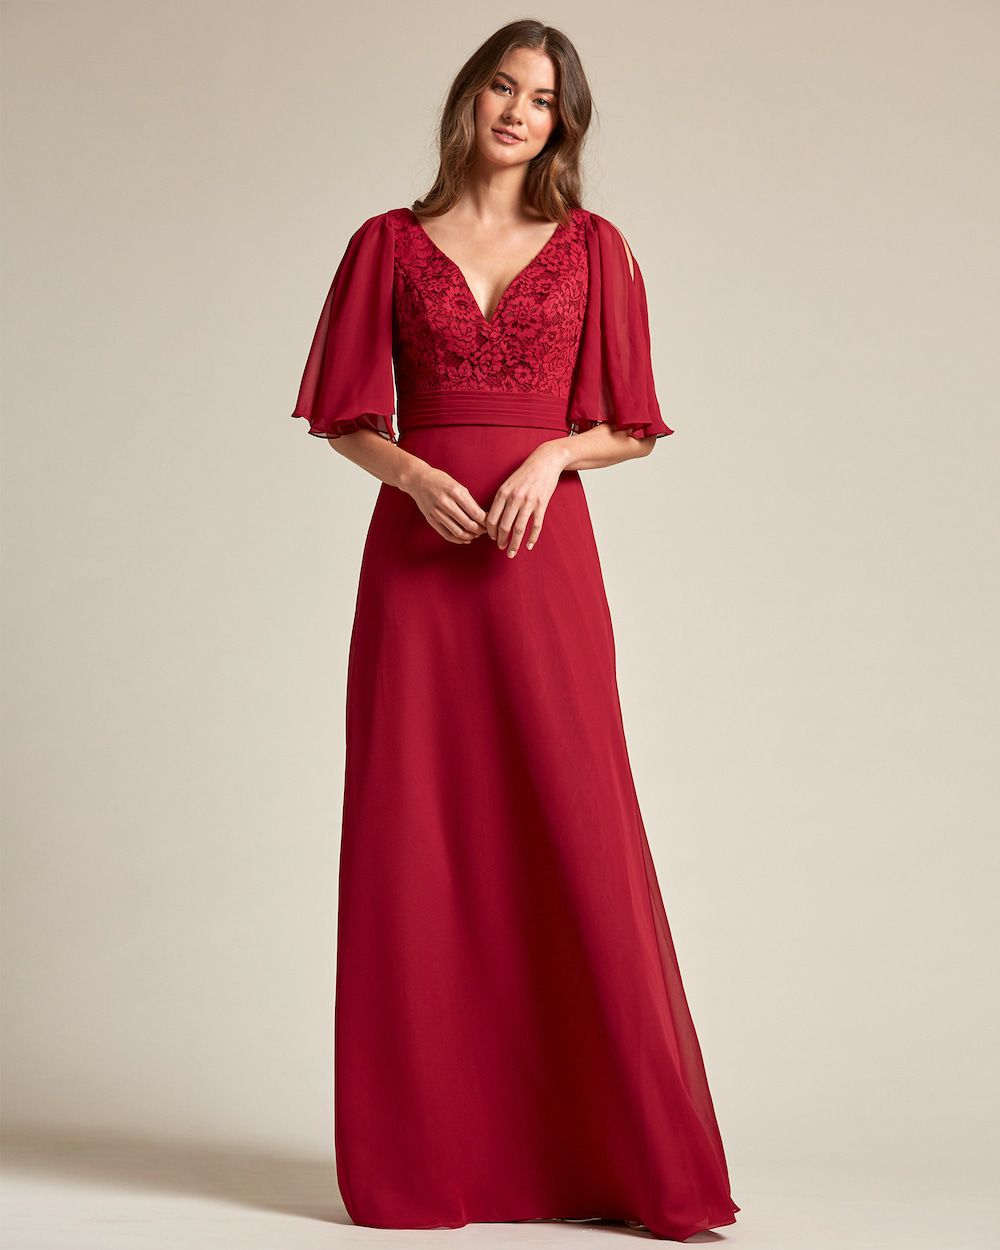 V Neck Embroidered Top With Bell Sleeves Bridesmaid Dress - Front